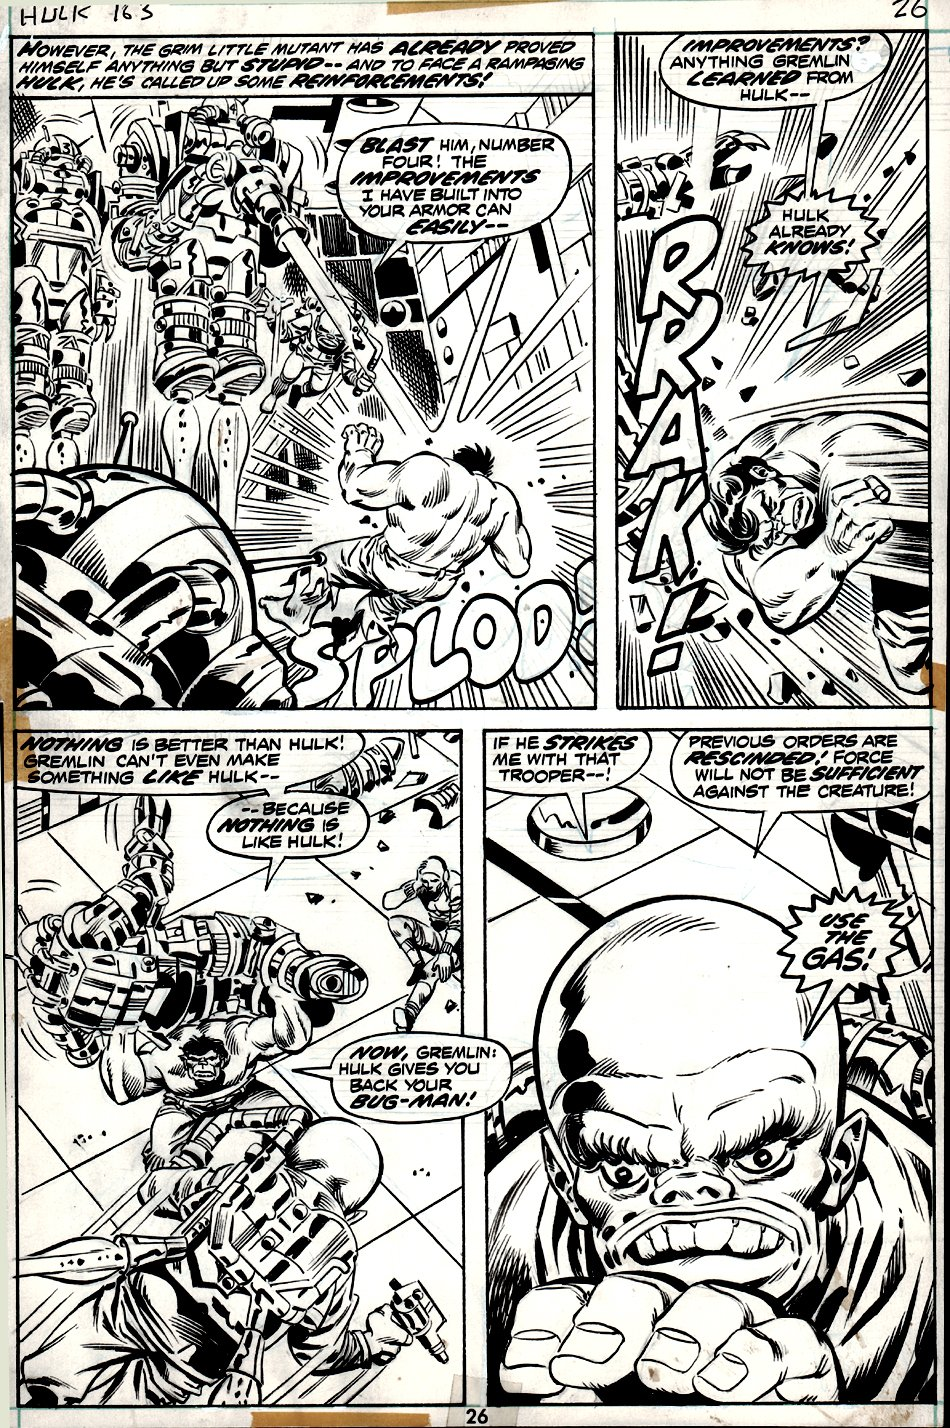 Incredible Hulk #163 p 26 (4 PANEL BATTLE PAGE!) 1972